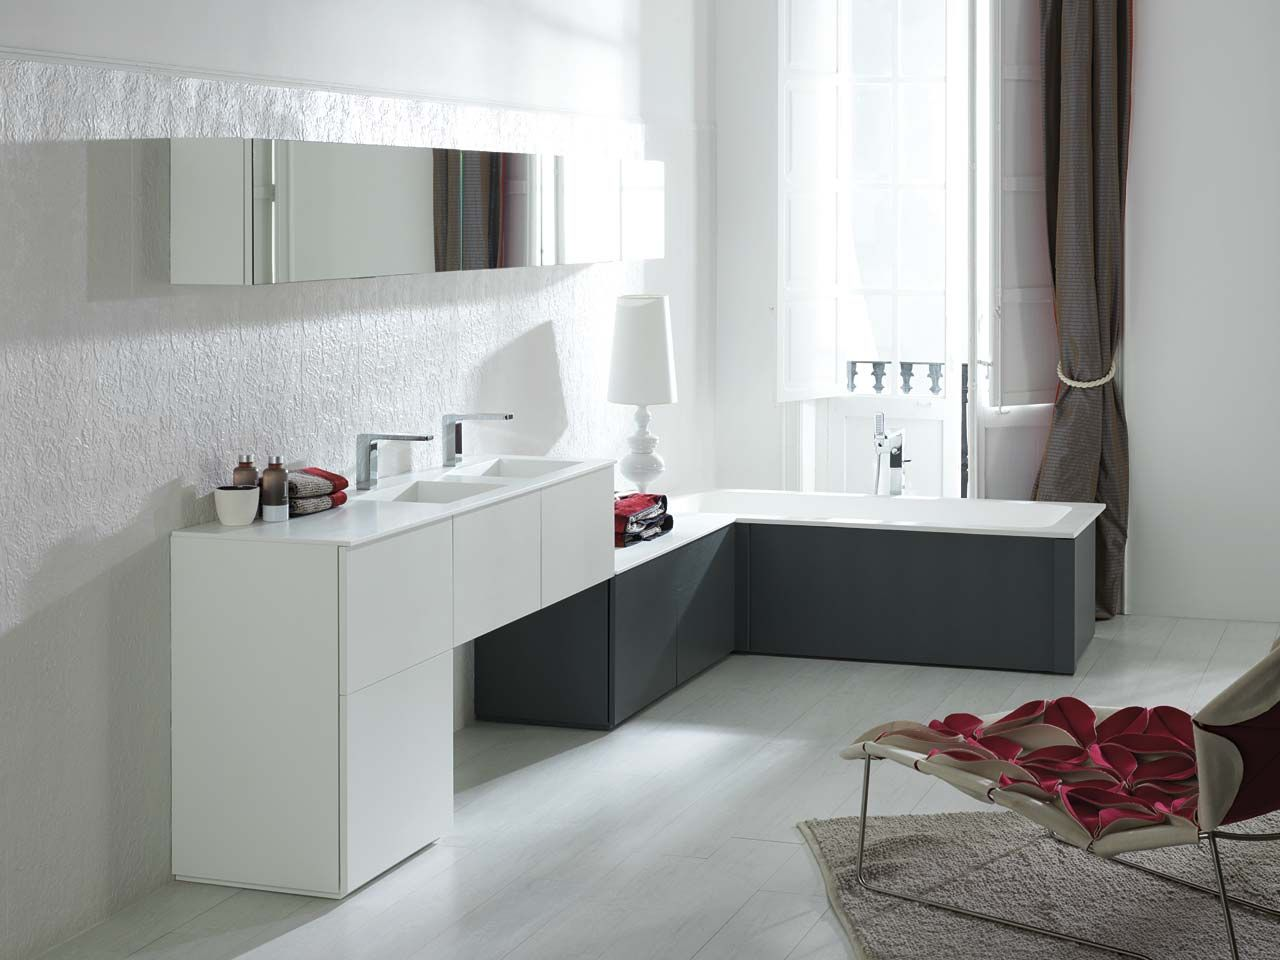 mobilier por la salle de bains porcelanosa showroom casachieli pinterest les salles de. Black Bedroom Furniture Sets. Home Design Ideas